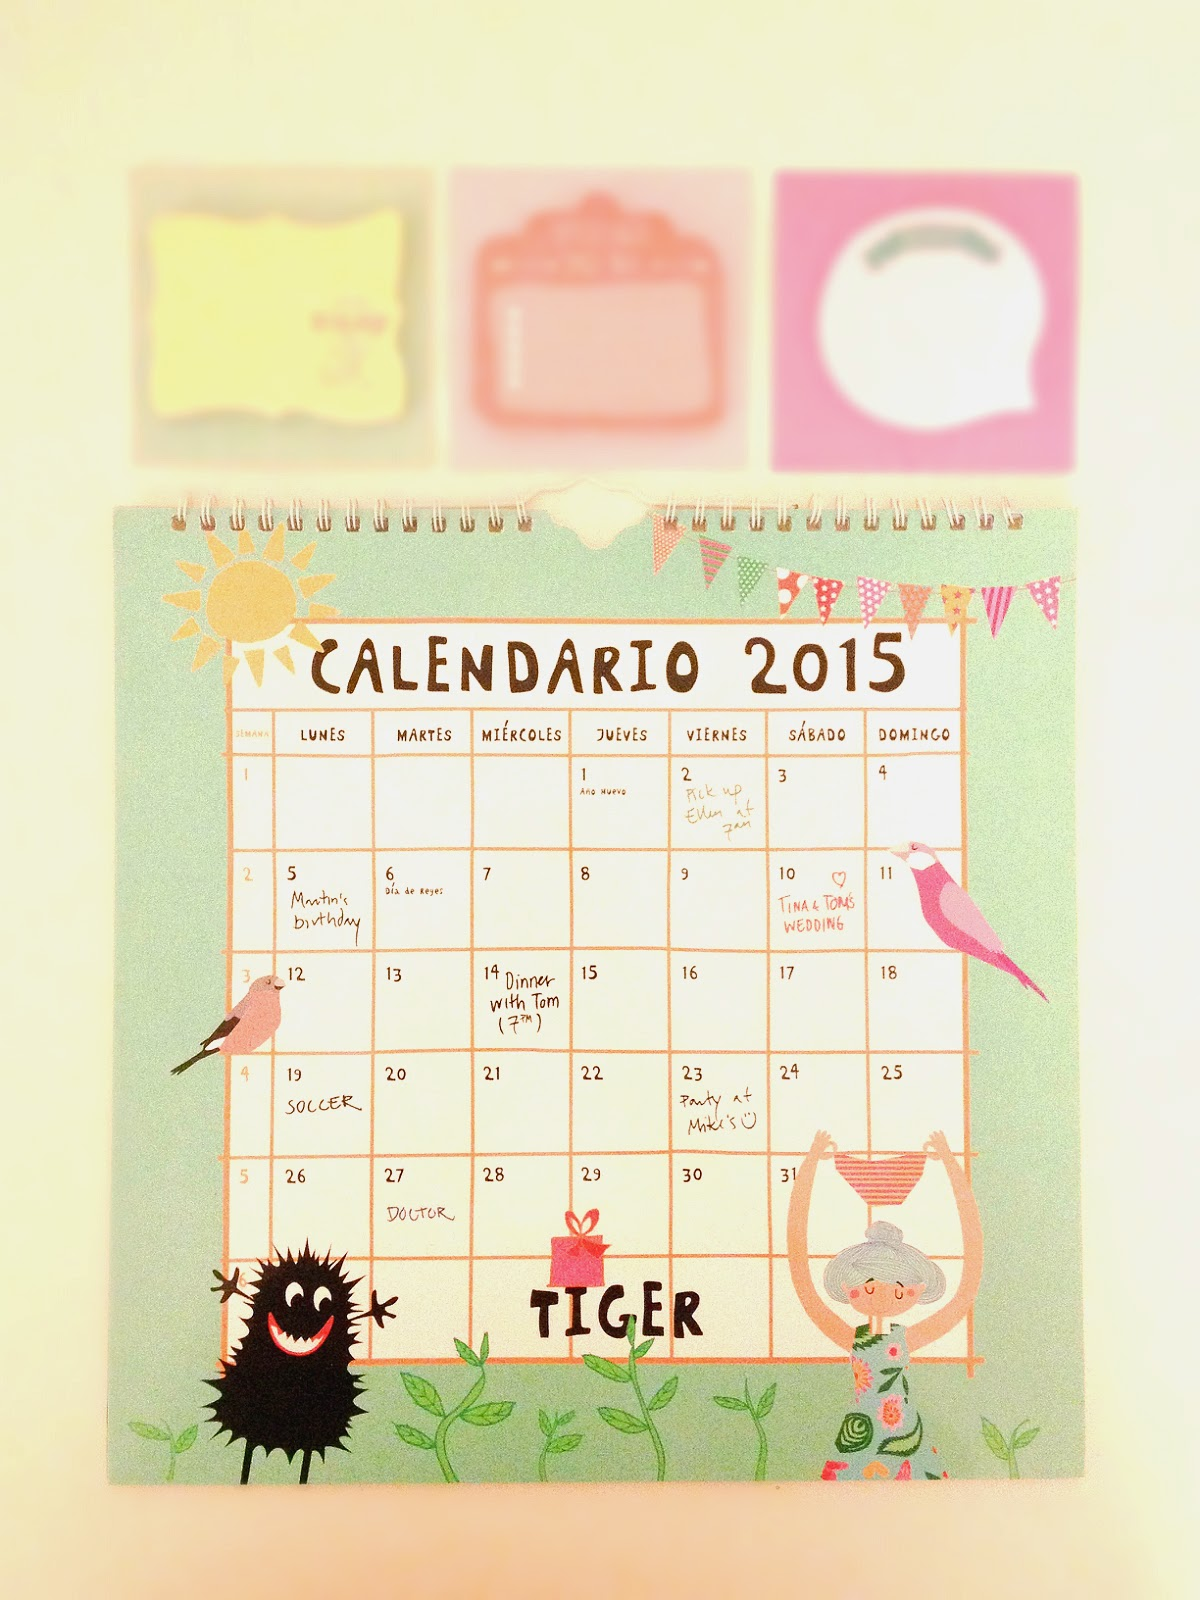 Tiger calendar calendrier Tigerstores whatsupdebs whats up debs